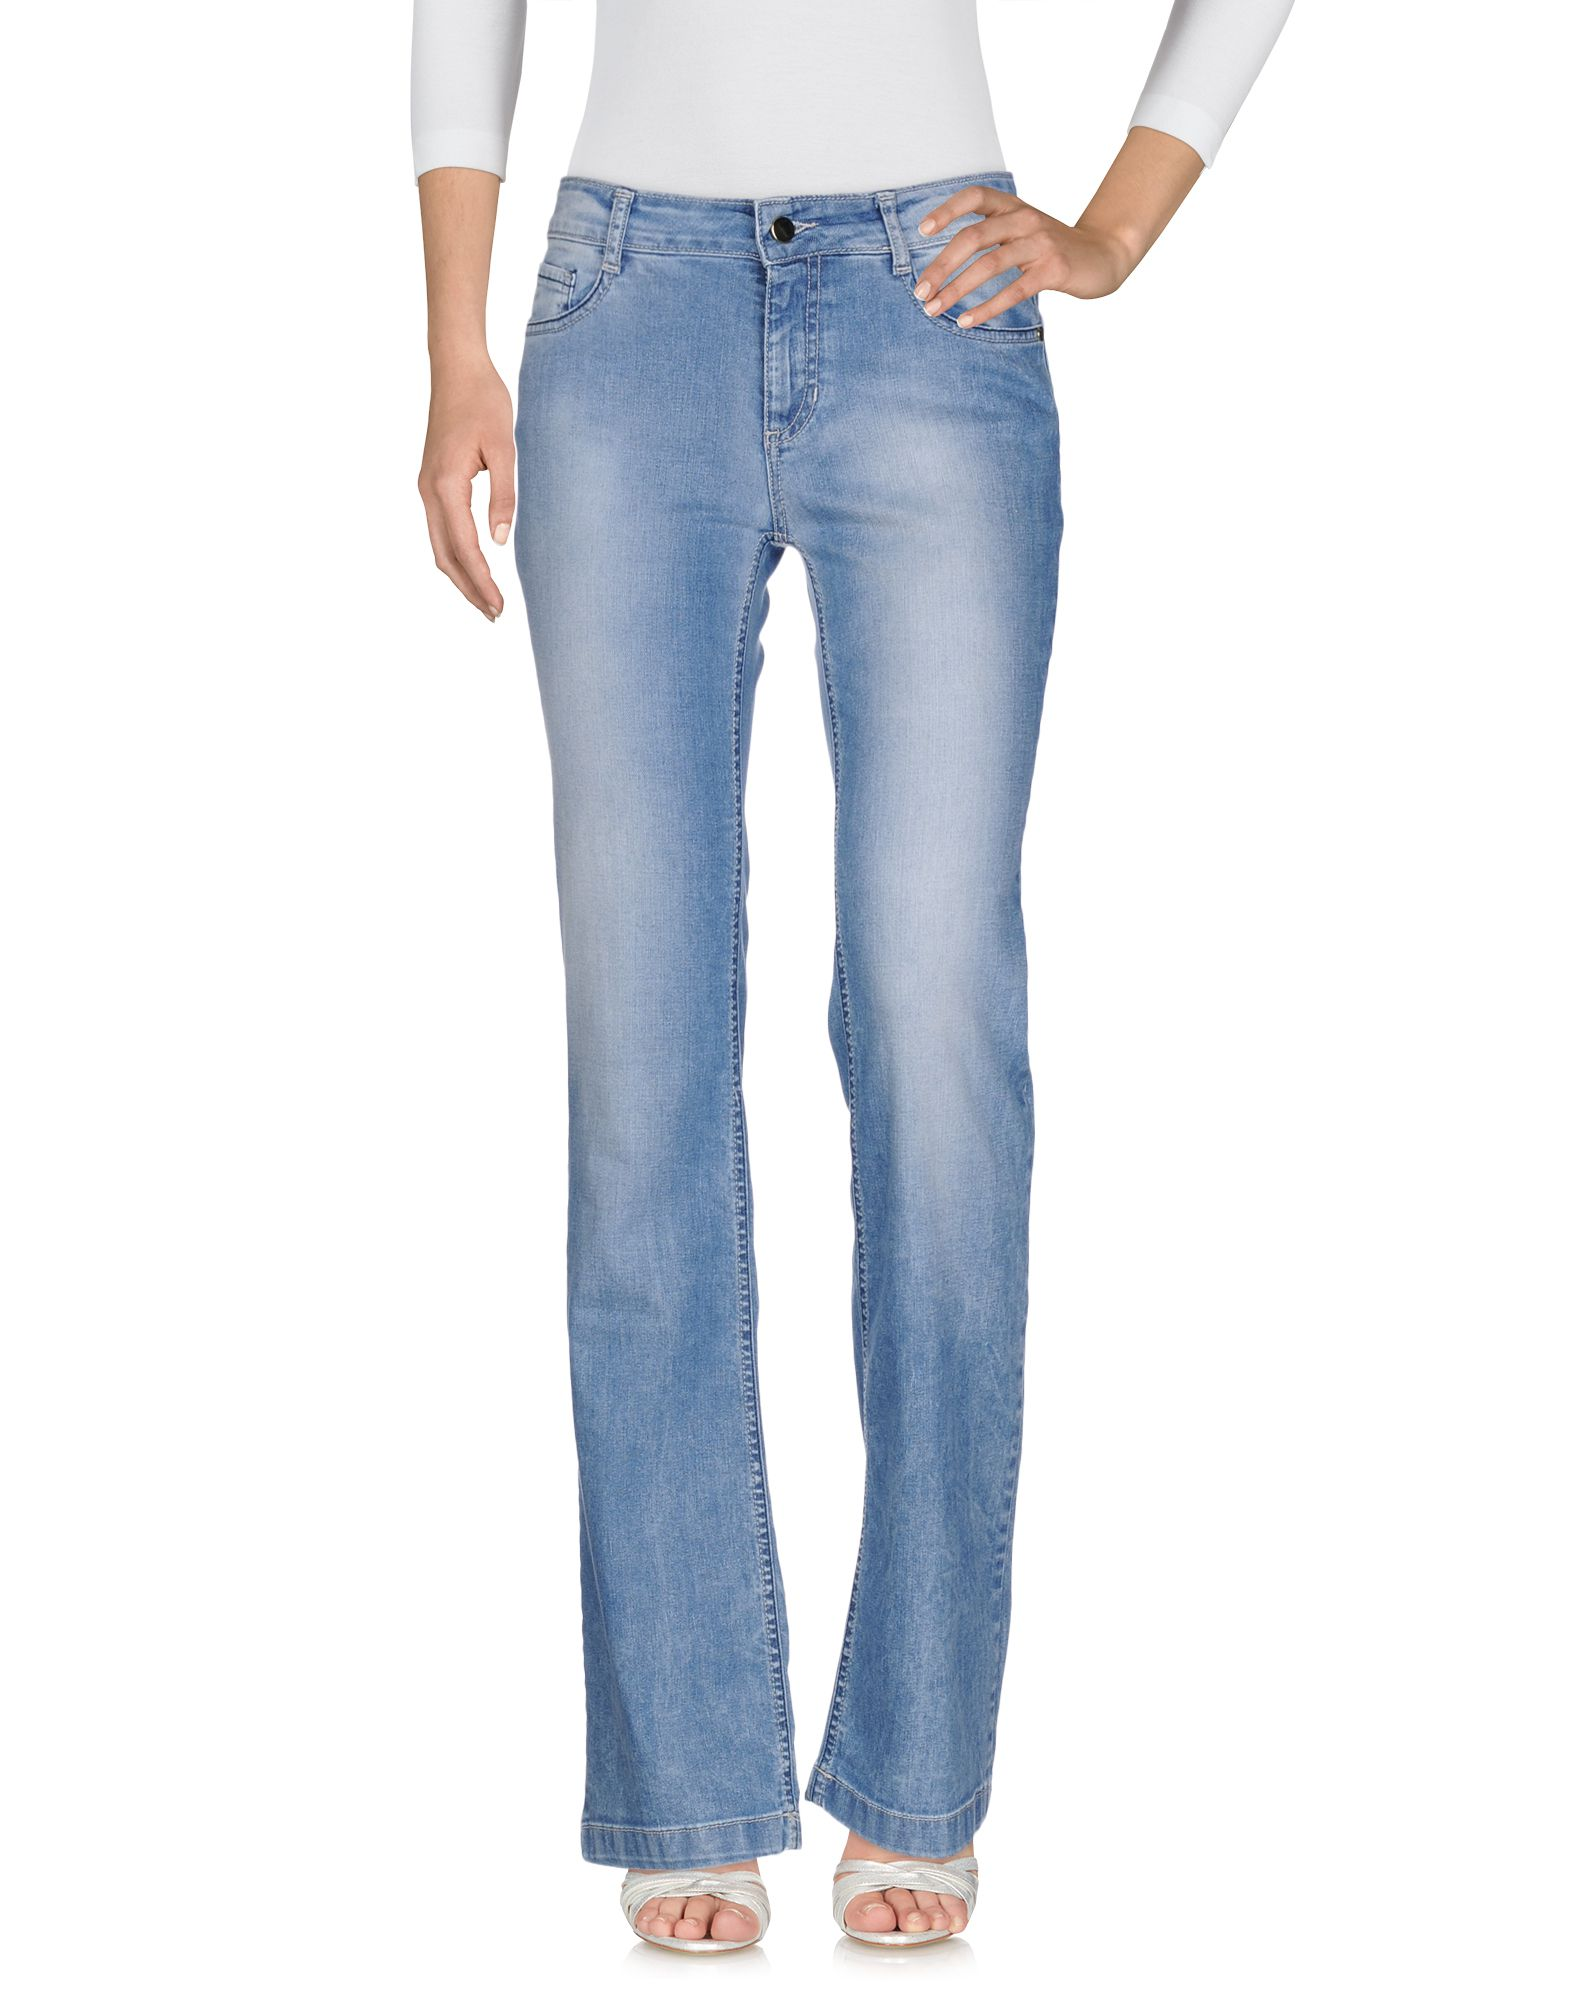 ANNA RACHELE JEANS COLLECTION Джинсовые брюки anna rachele jeans collection джинсовые брюки